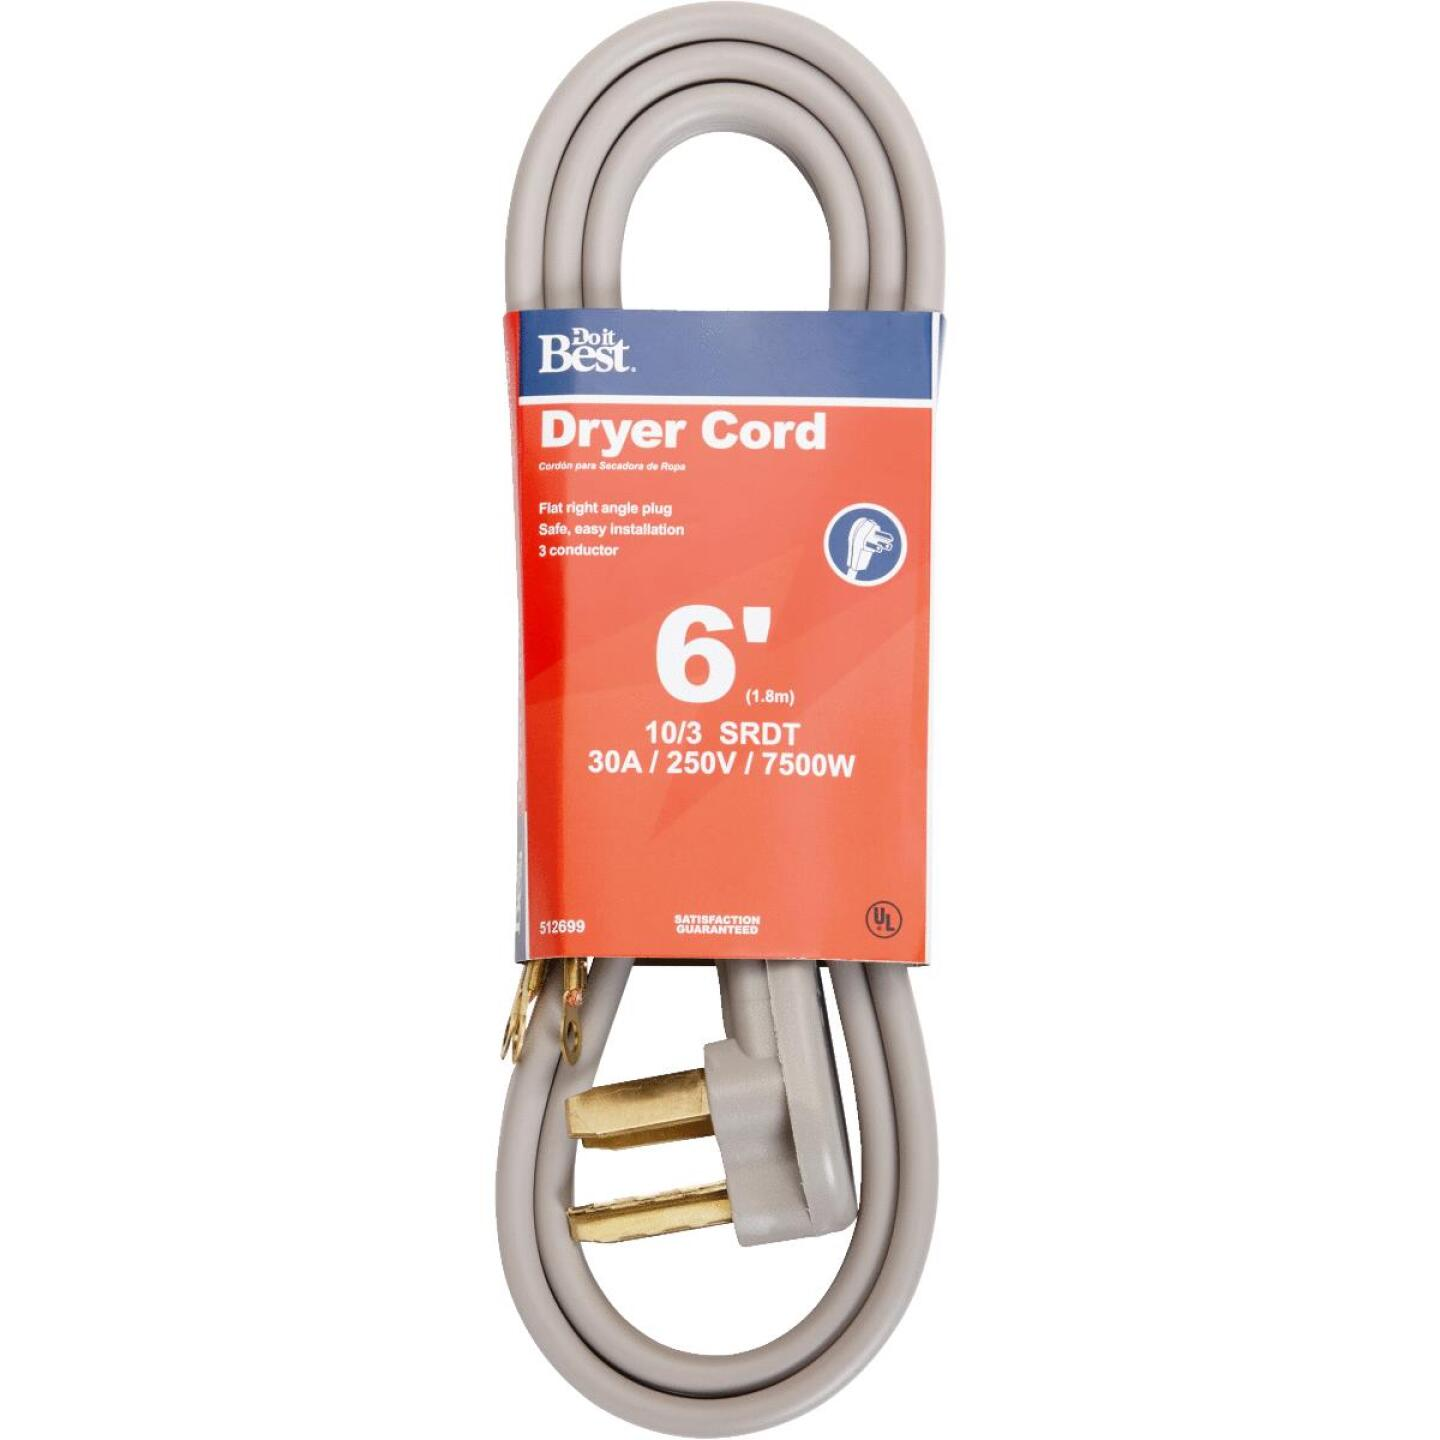 Do it Best 6 Ft. 10/3 30A Dryer Cord Image 1